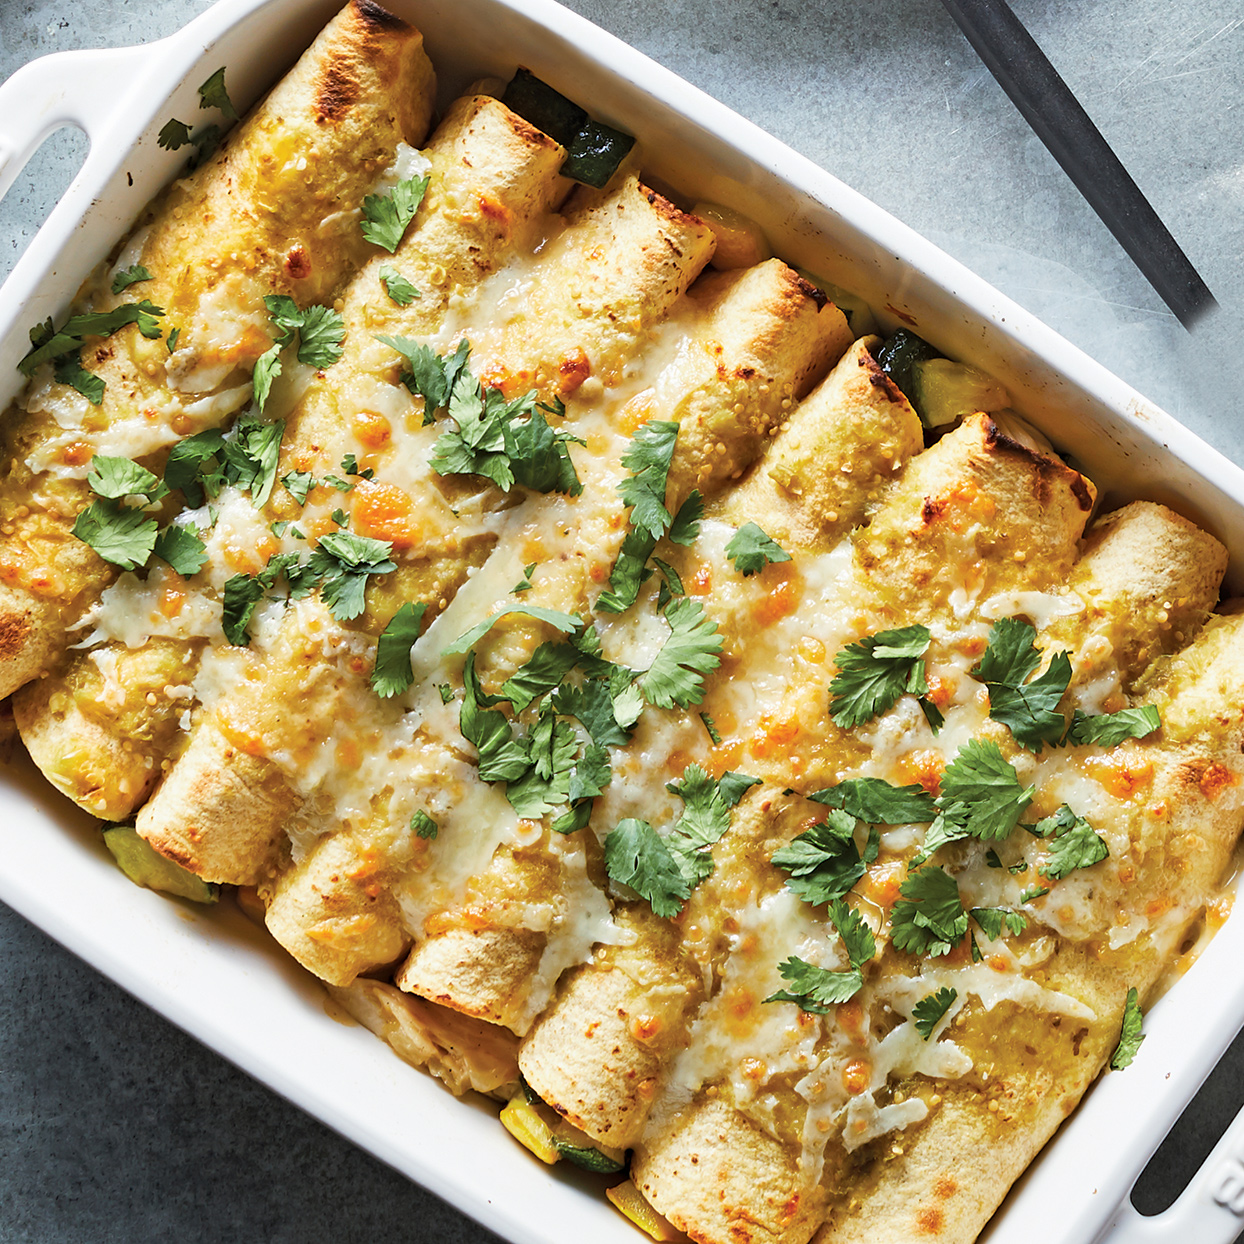 25-Minute Chicken & Veggie Enchiladas